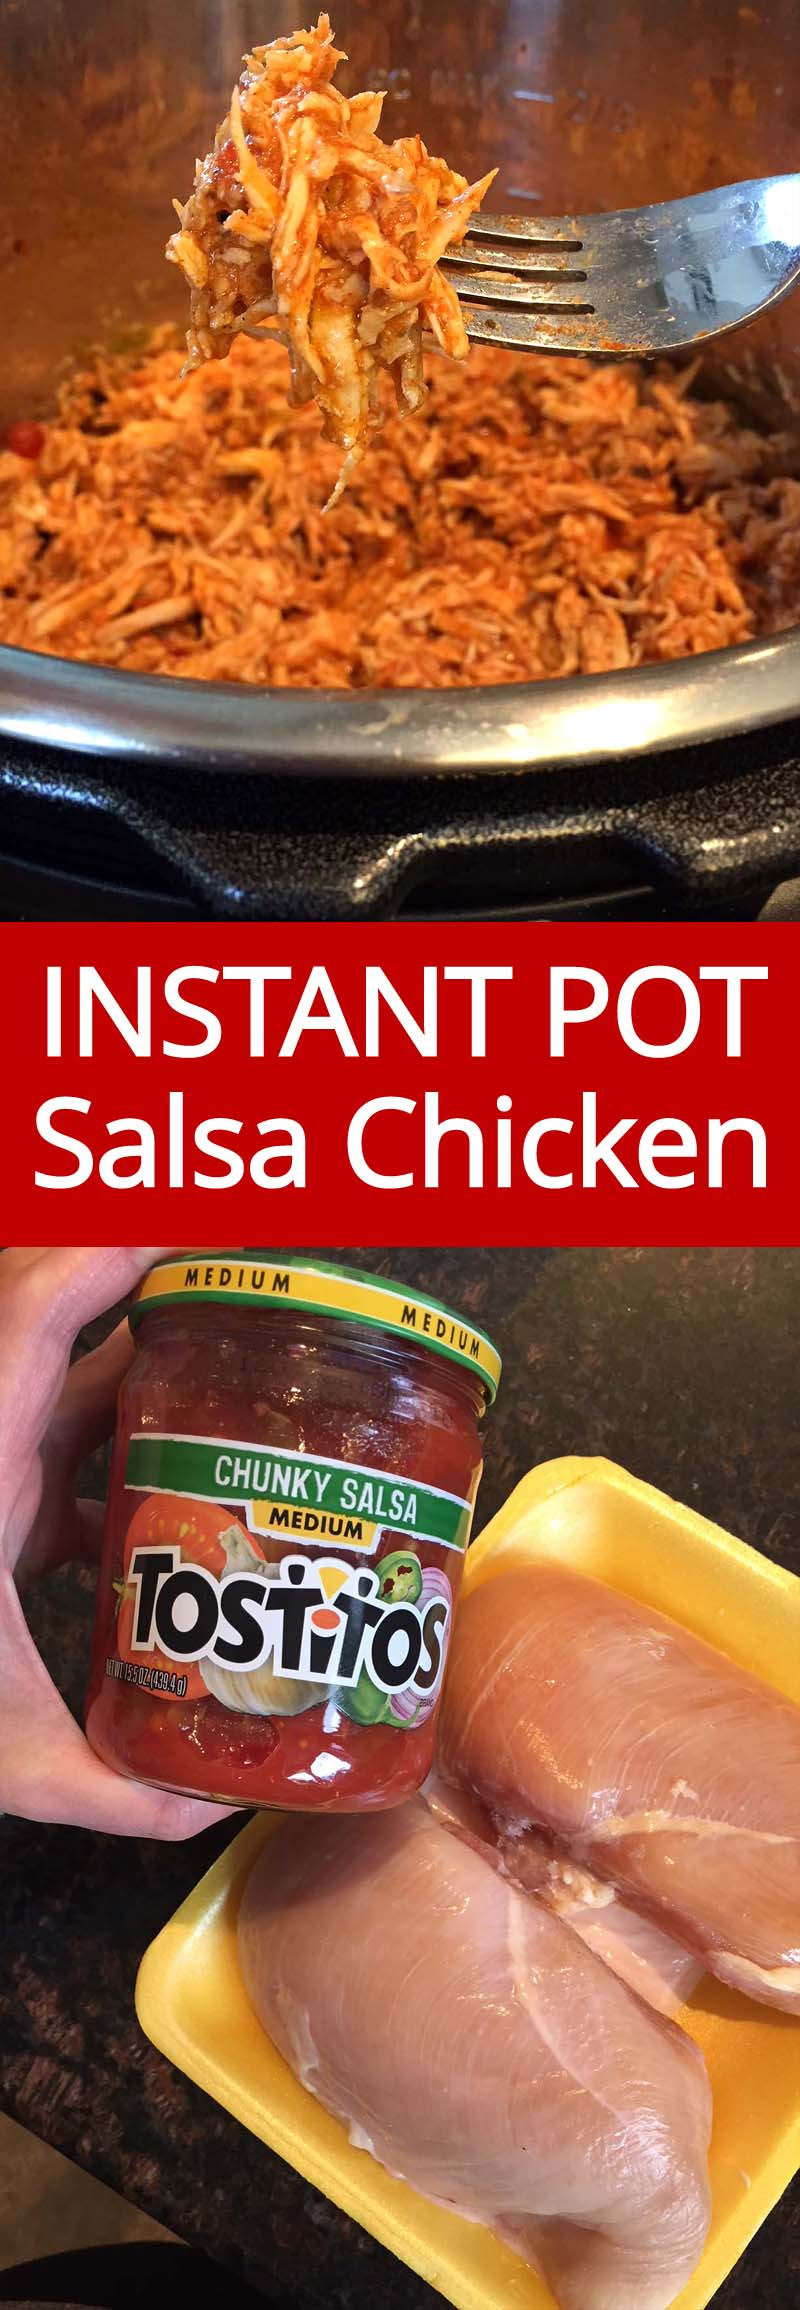 This is the best Instant Pot salsa chicken recipe ever! I've tried many salsa chicken recipes, and this one is the most flavorful! SUPER EASY!!!